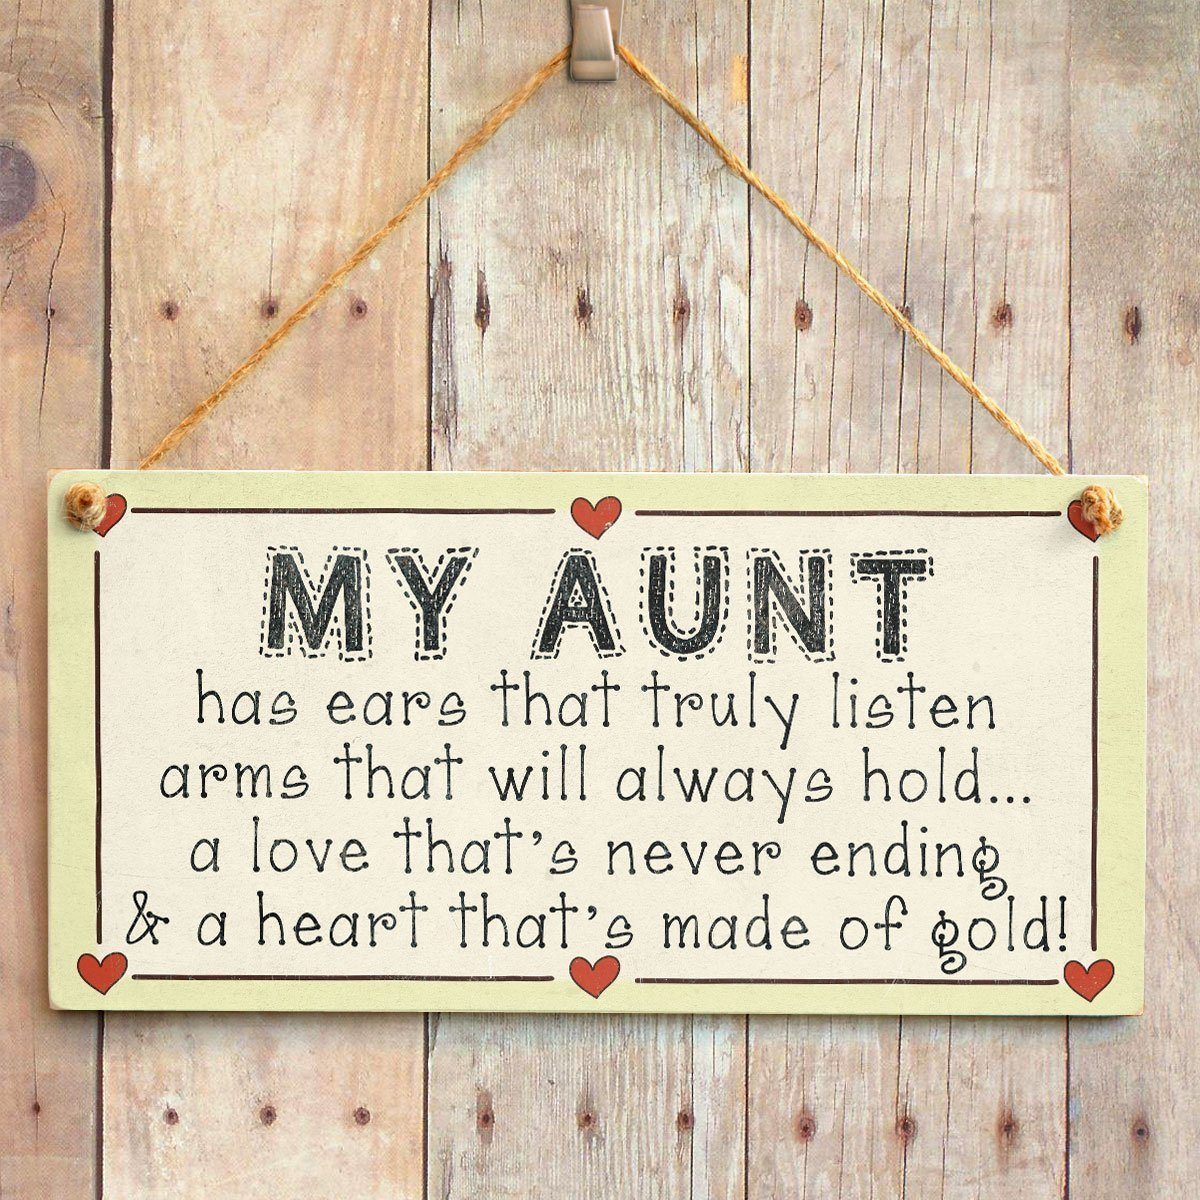 Meaningful Saying Plaque for Special Aunt 10x5 A Love Thats Never Ending and a Heart Thats Made of Gold Meijiafei My Aunt Has Ears That Truly Listen Arms That Will Always Hold